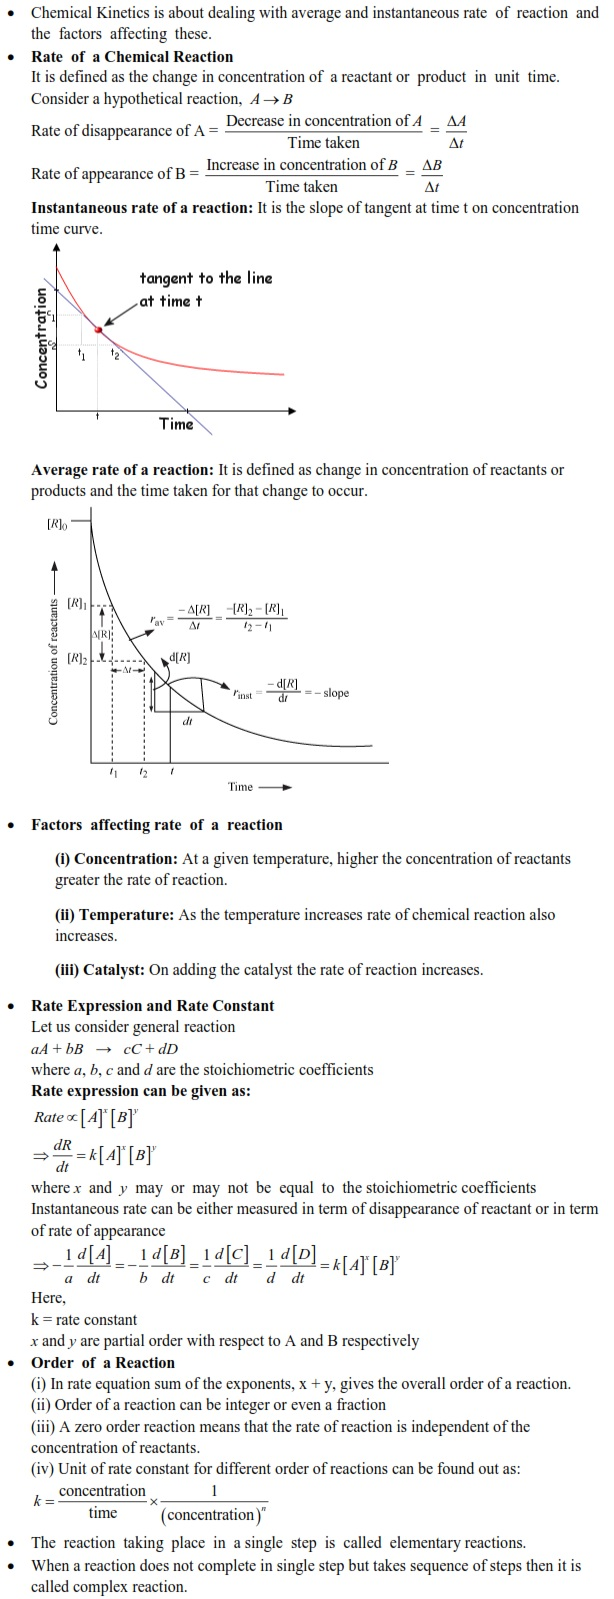 UPSEE Chemical Kinetics